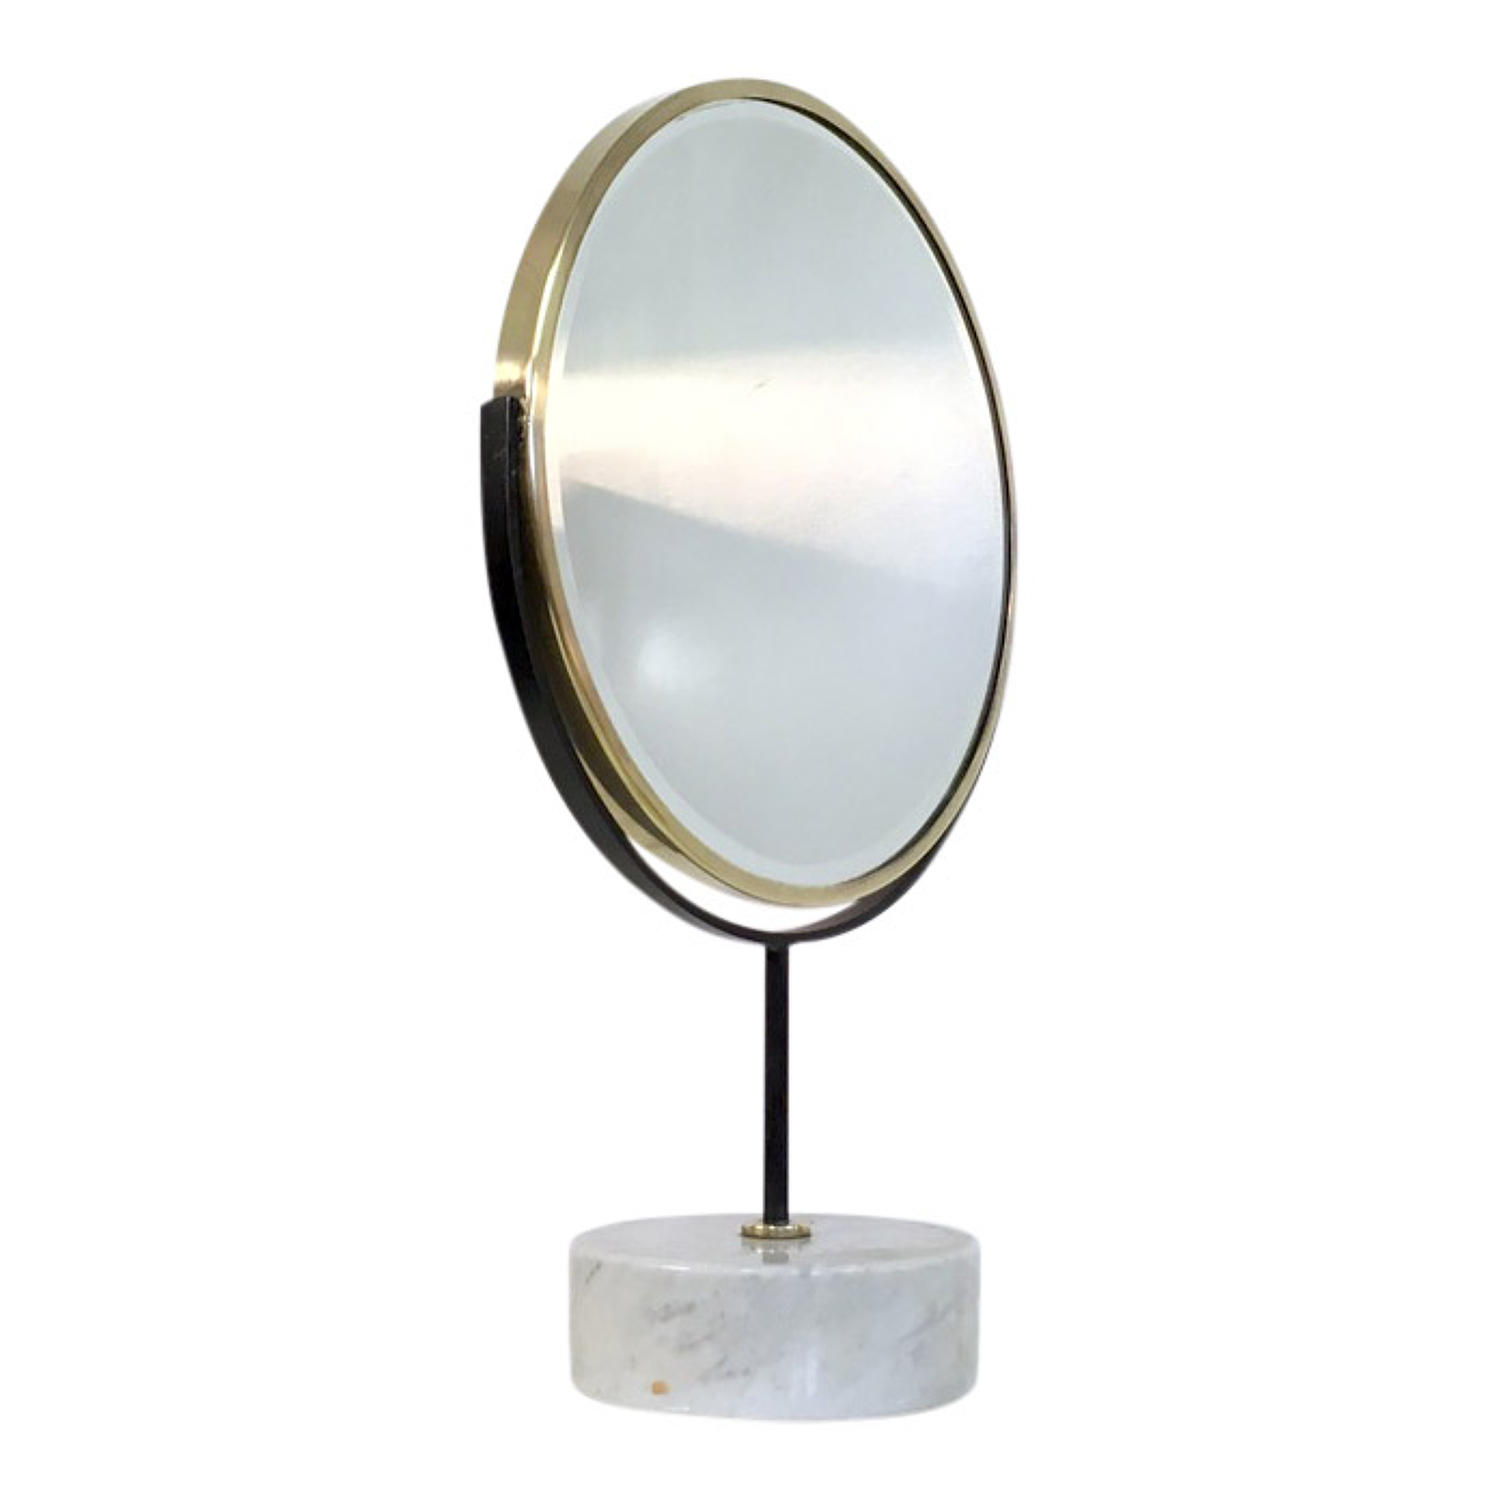 Brass and marble vanity mirror